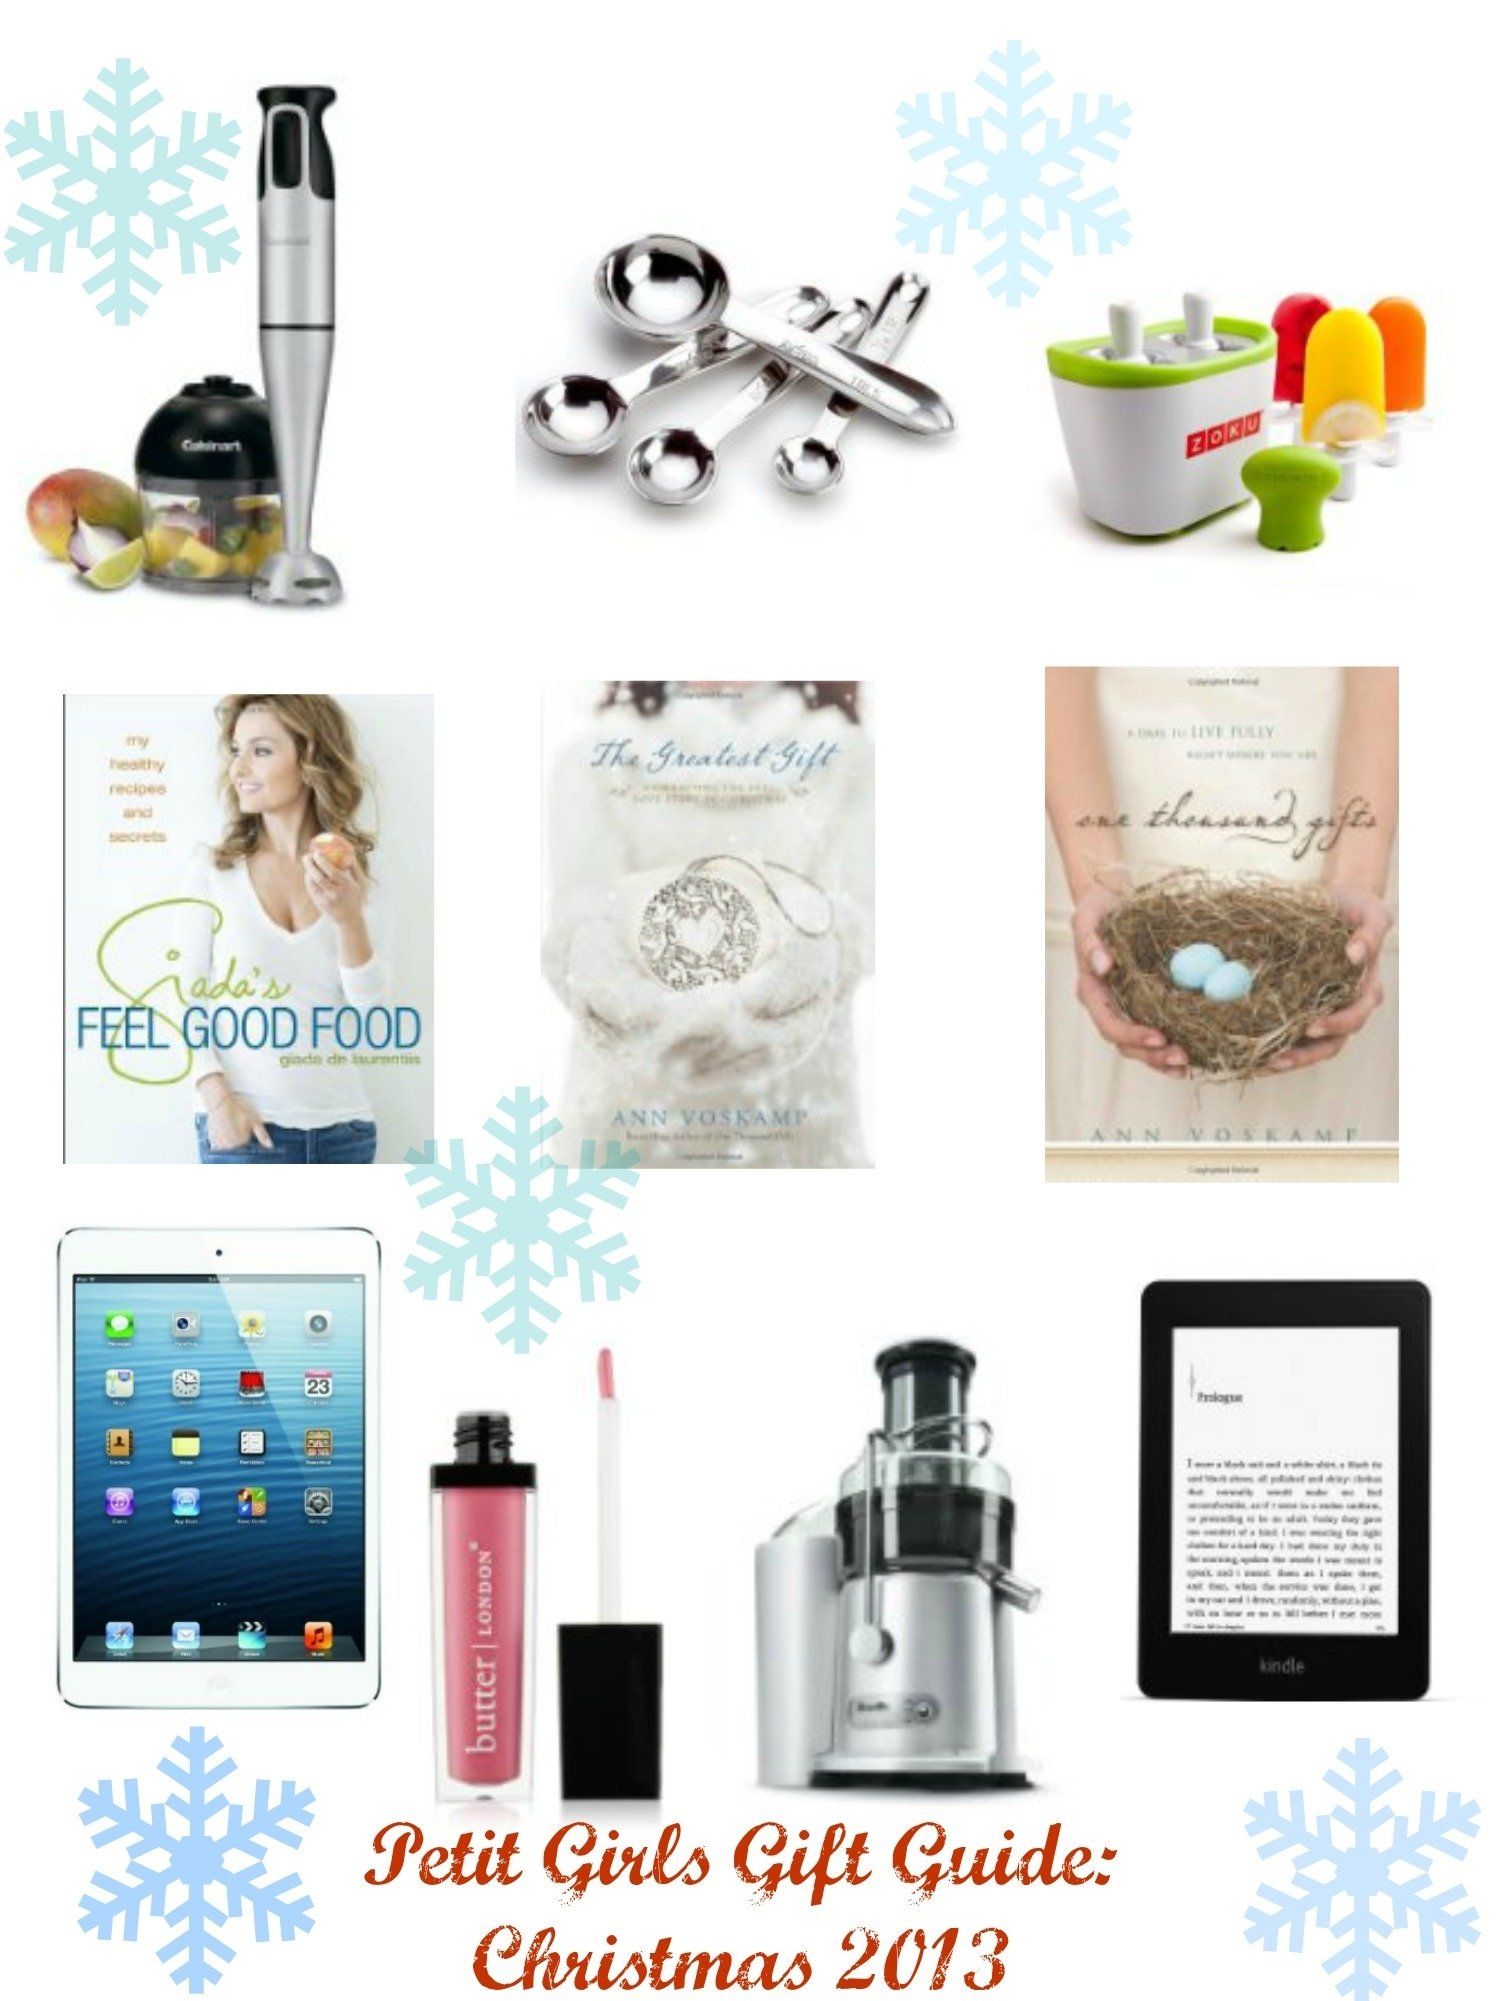 10 Cute Christmas Gift Ideas For Girls petit girls gift guide christmas gift ideas 2013 petit foodie 2 2020